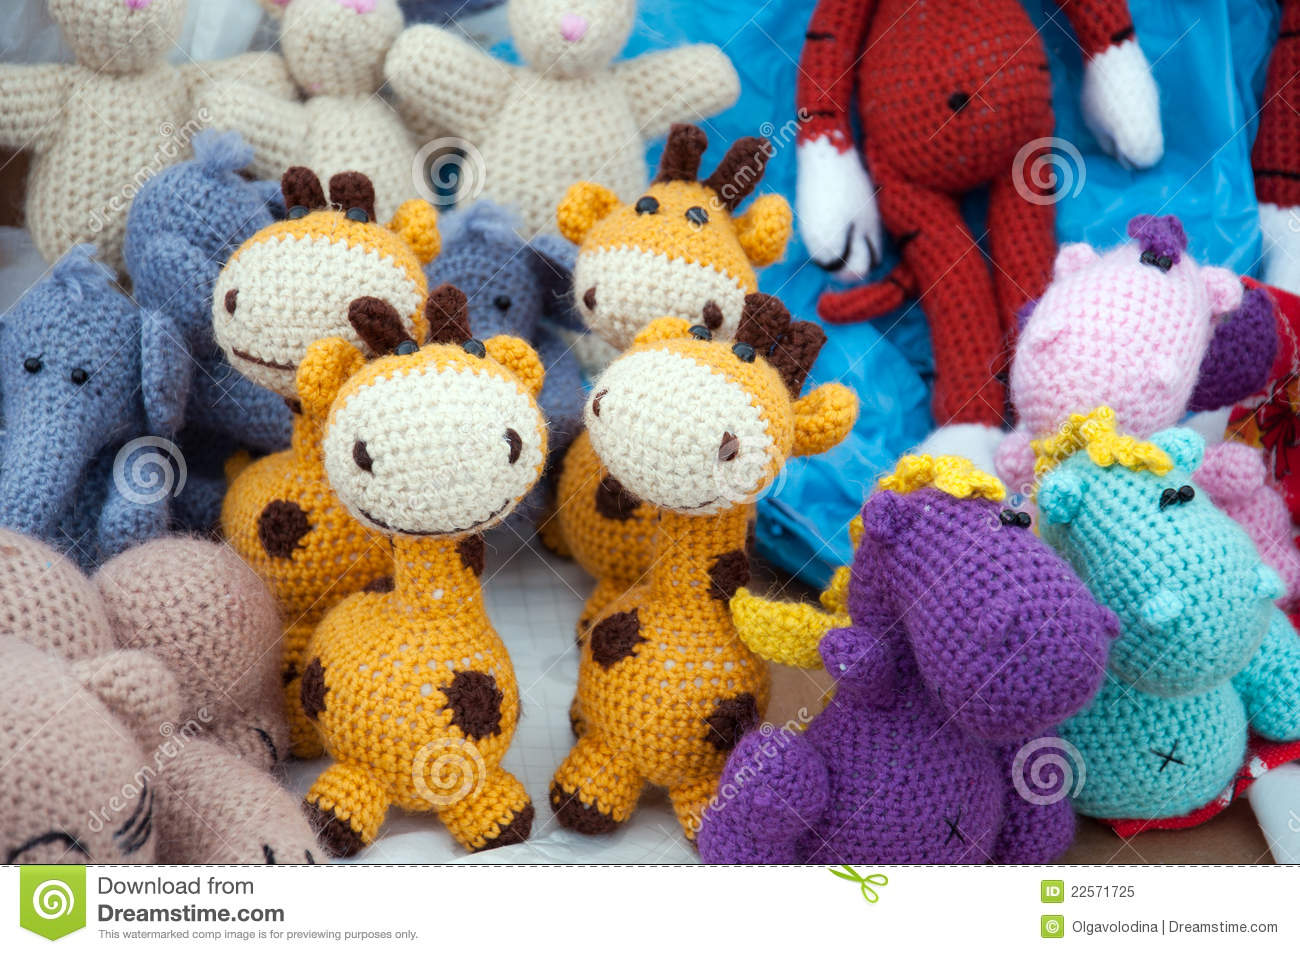 Knitted Soft Toys, Handmade Royalty Free Stock Photo - Image: 22571725